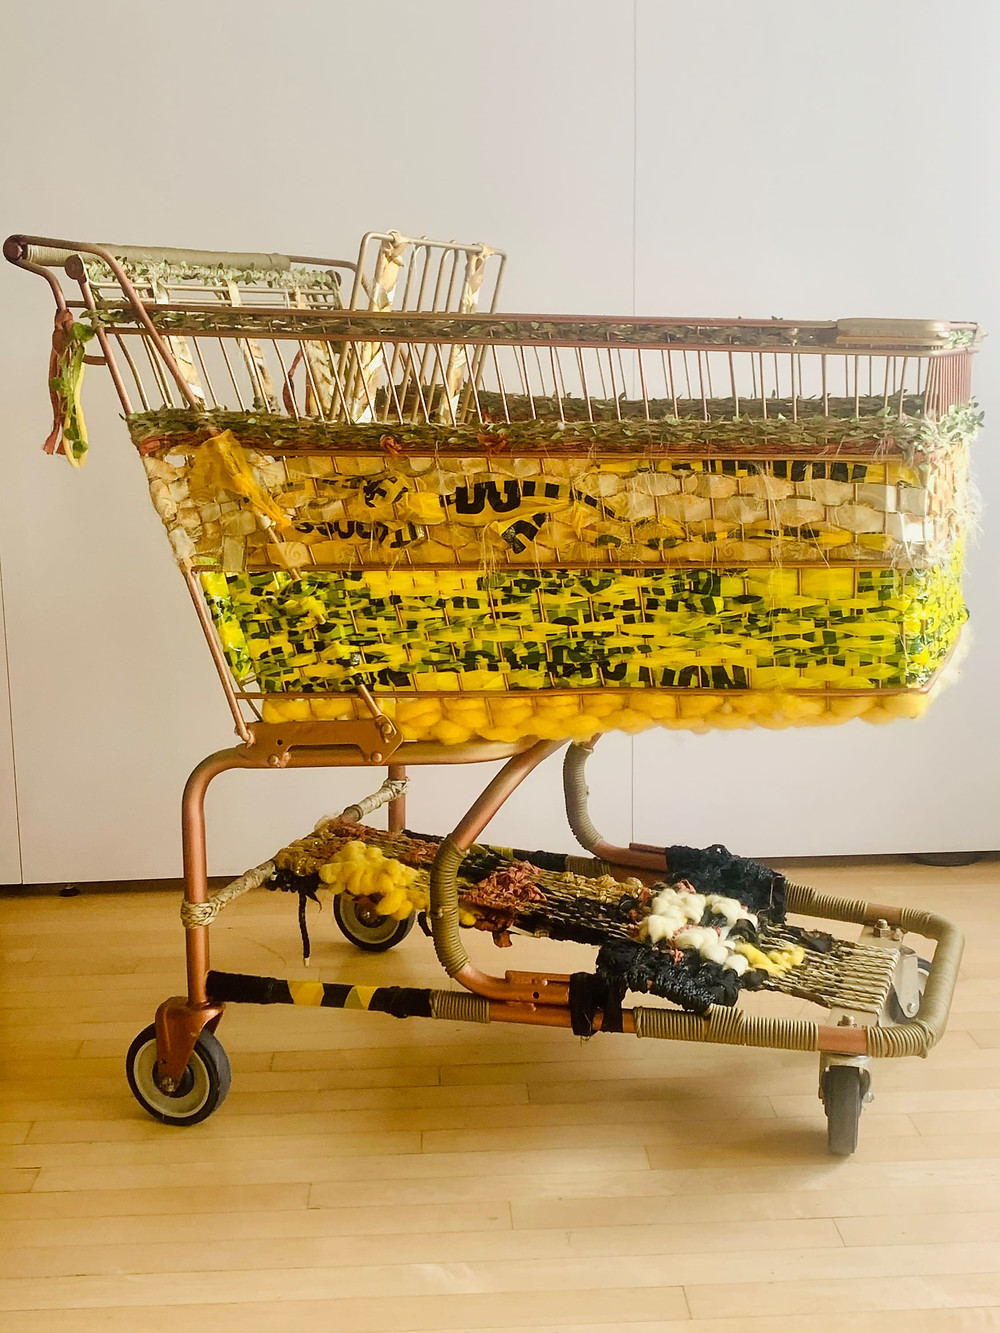 Rose gold Shoping cart woven with various yarns and caution tape